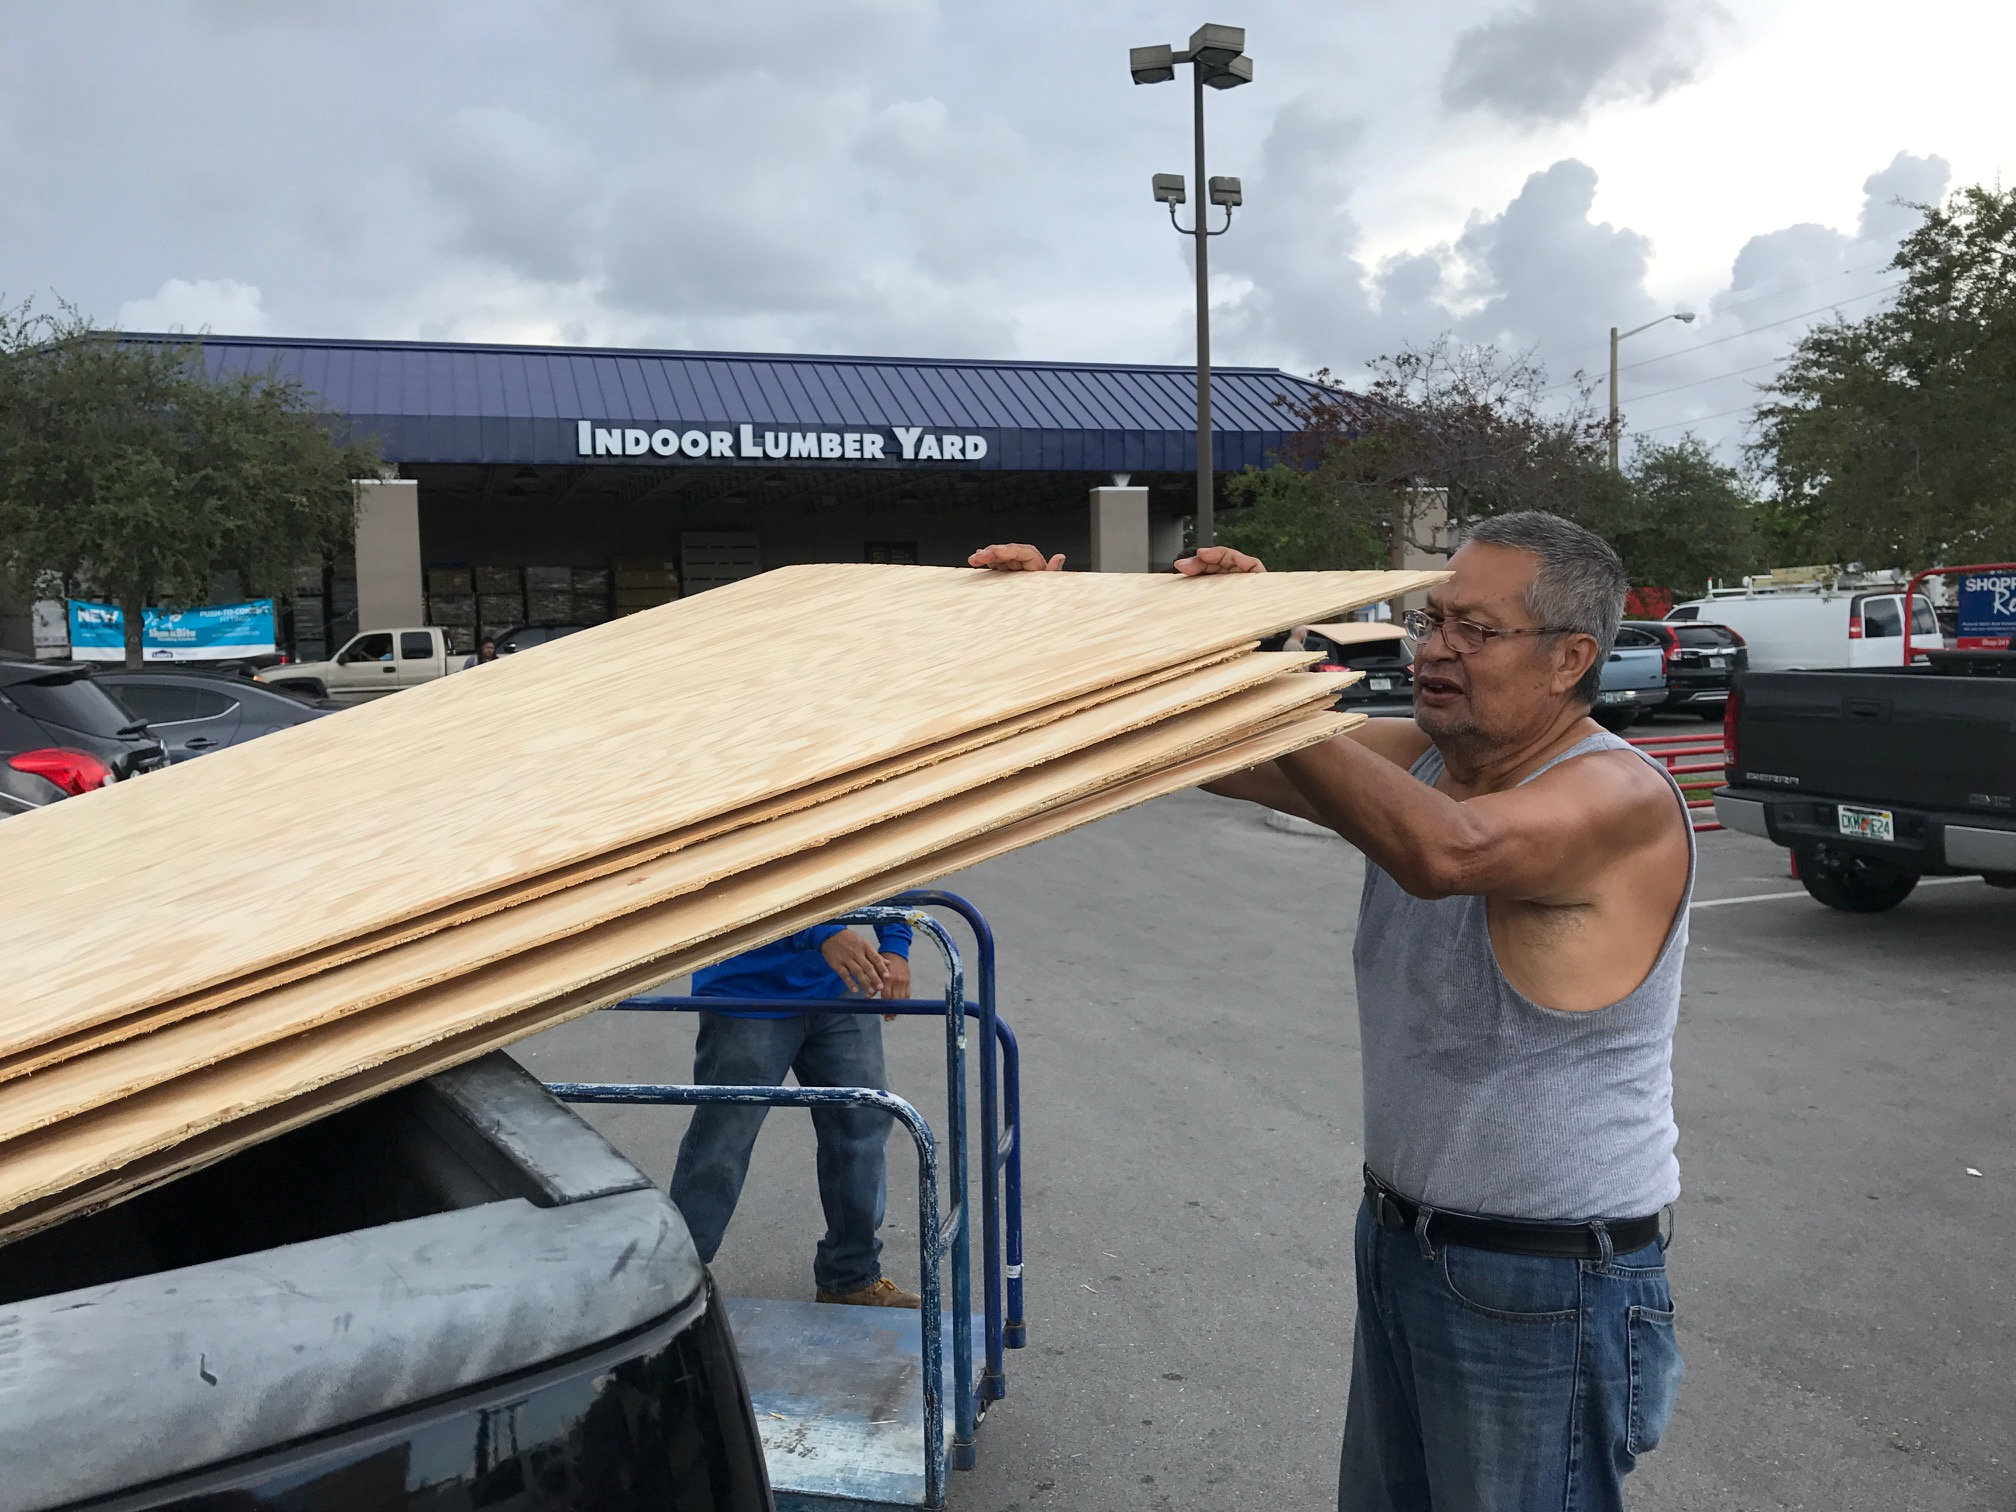 Jerry Garcia, 70, a retired mechanic, loads one of the 20 sheets of plywood he is taking home to prepare for Hurricane Irma at a home supply store in Oakland Park, Florida on Sept. 5, 2017.    (REUTERS/Bernie Woodall)